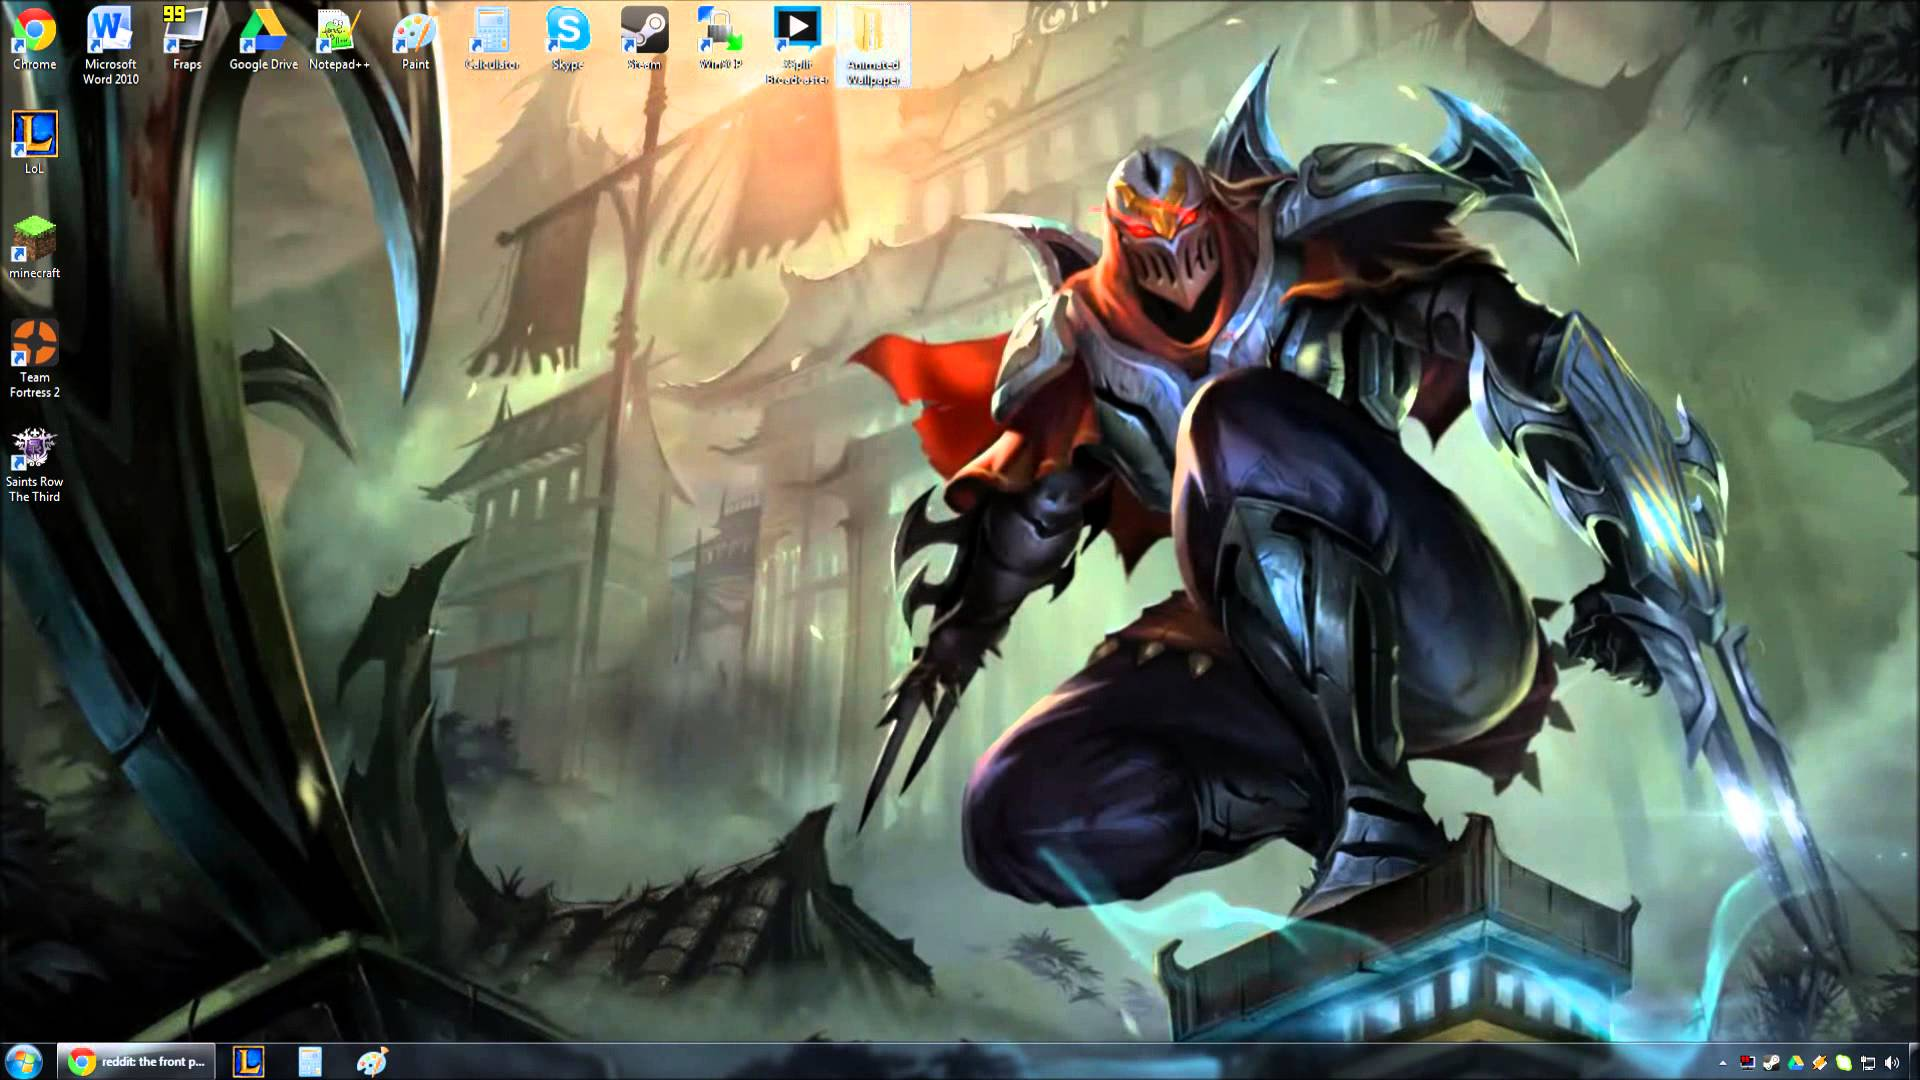 Free Download Zed Animated Wallpaper Preview 1920x1080 For Your